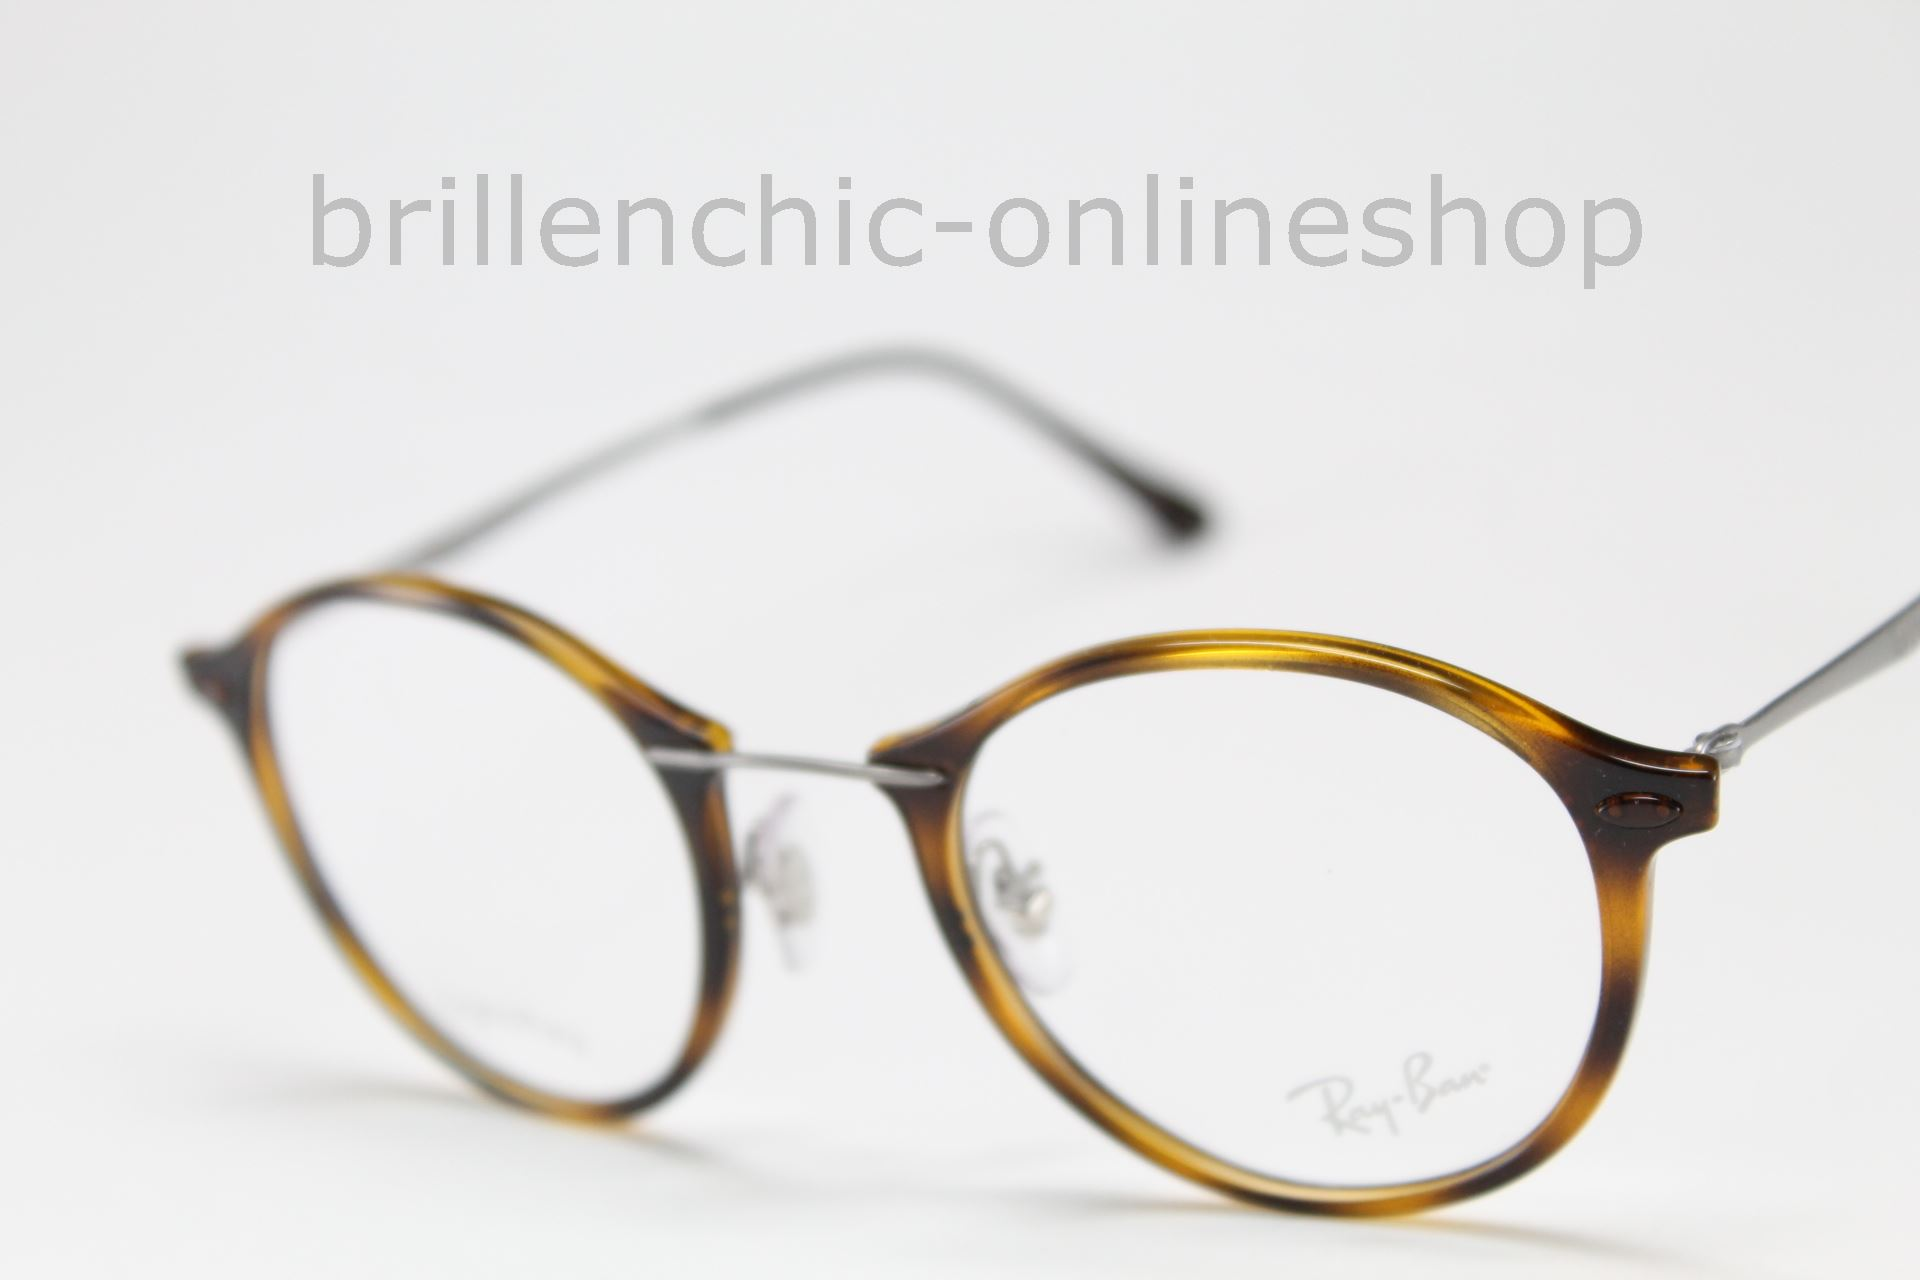 a214123002 Brillenchic-onlineshop in Berlin - Ray Ban RB 7073 5588 LIGHT RAY